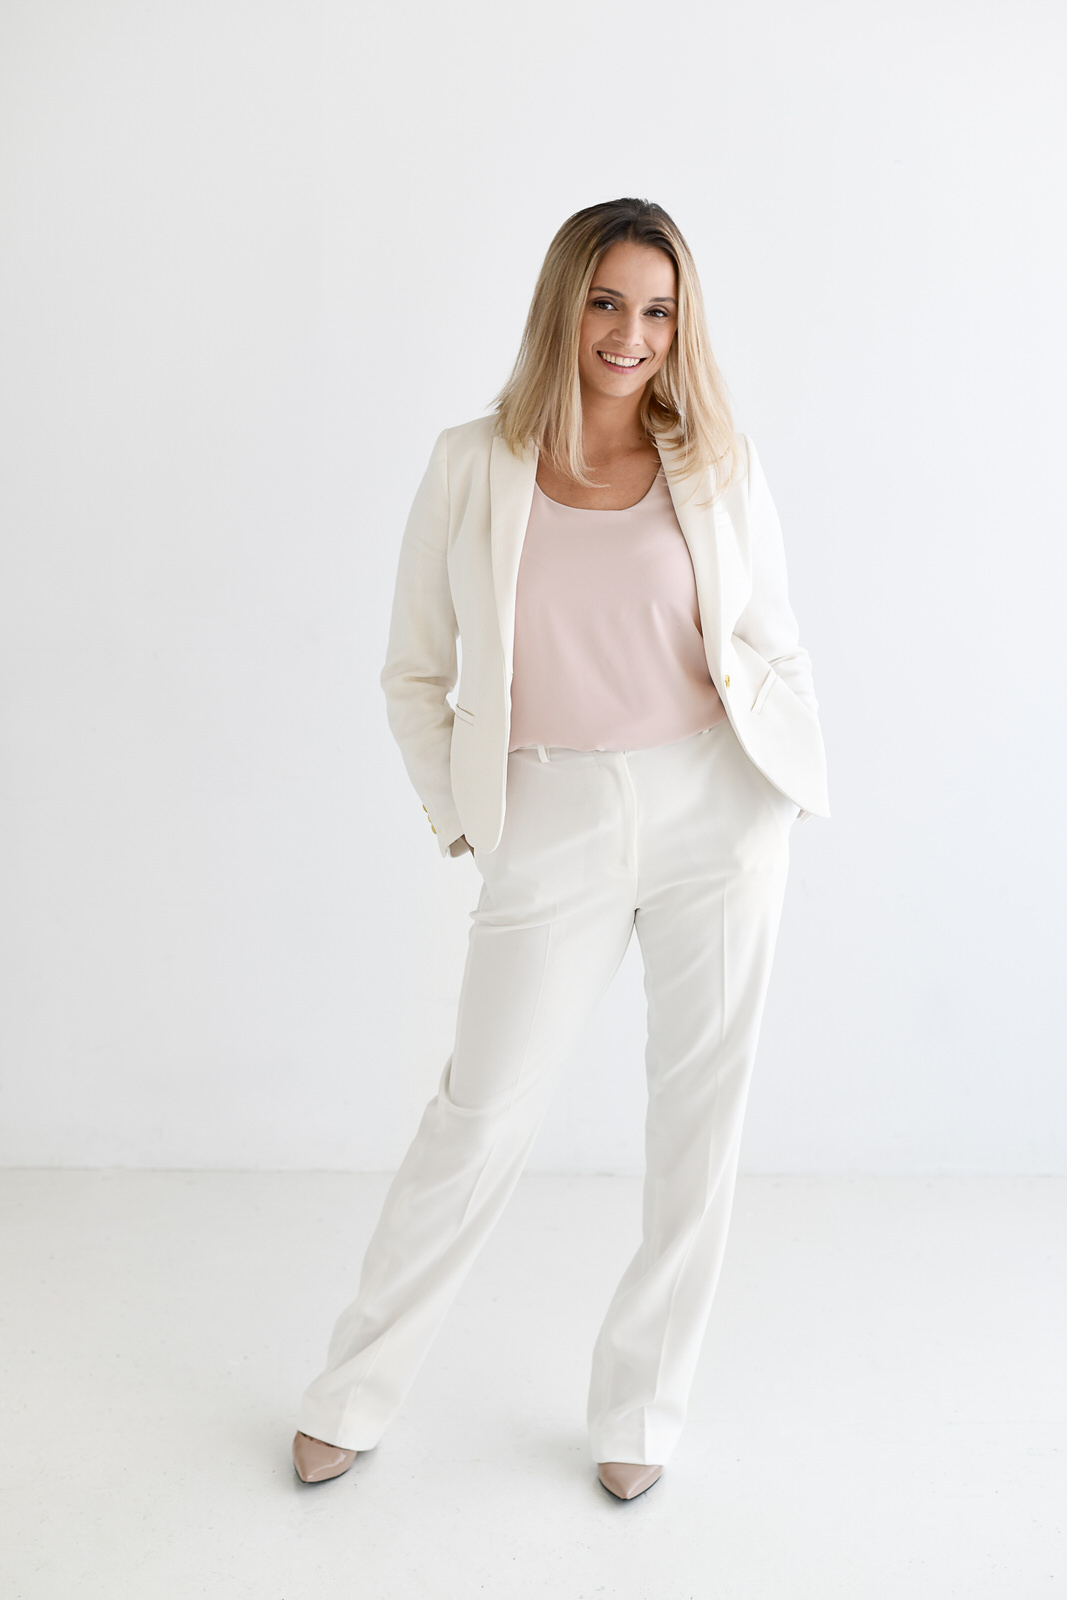 Full length image of Sava from Avance Organizing in a white room